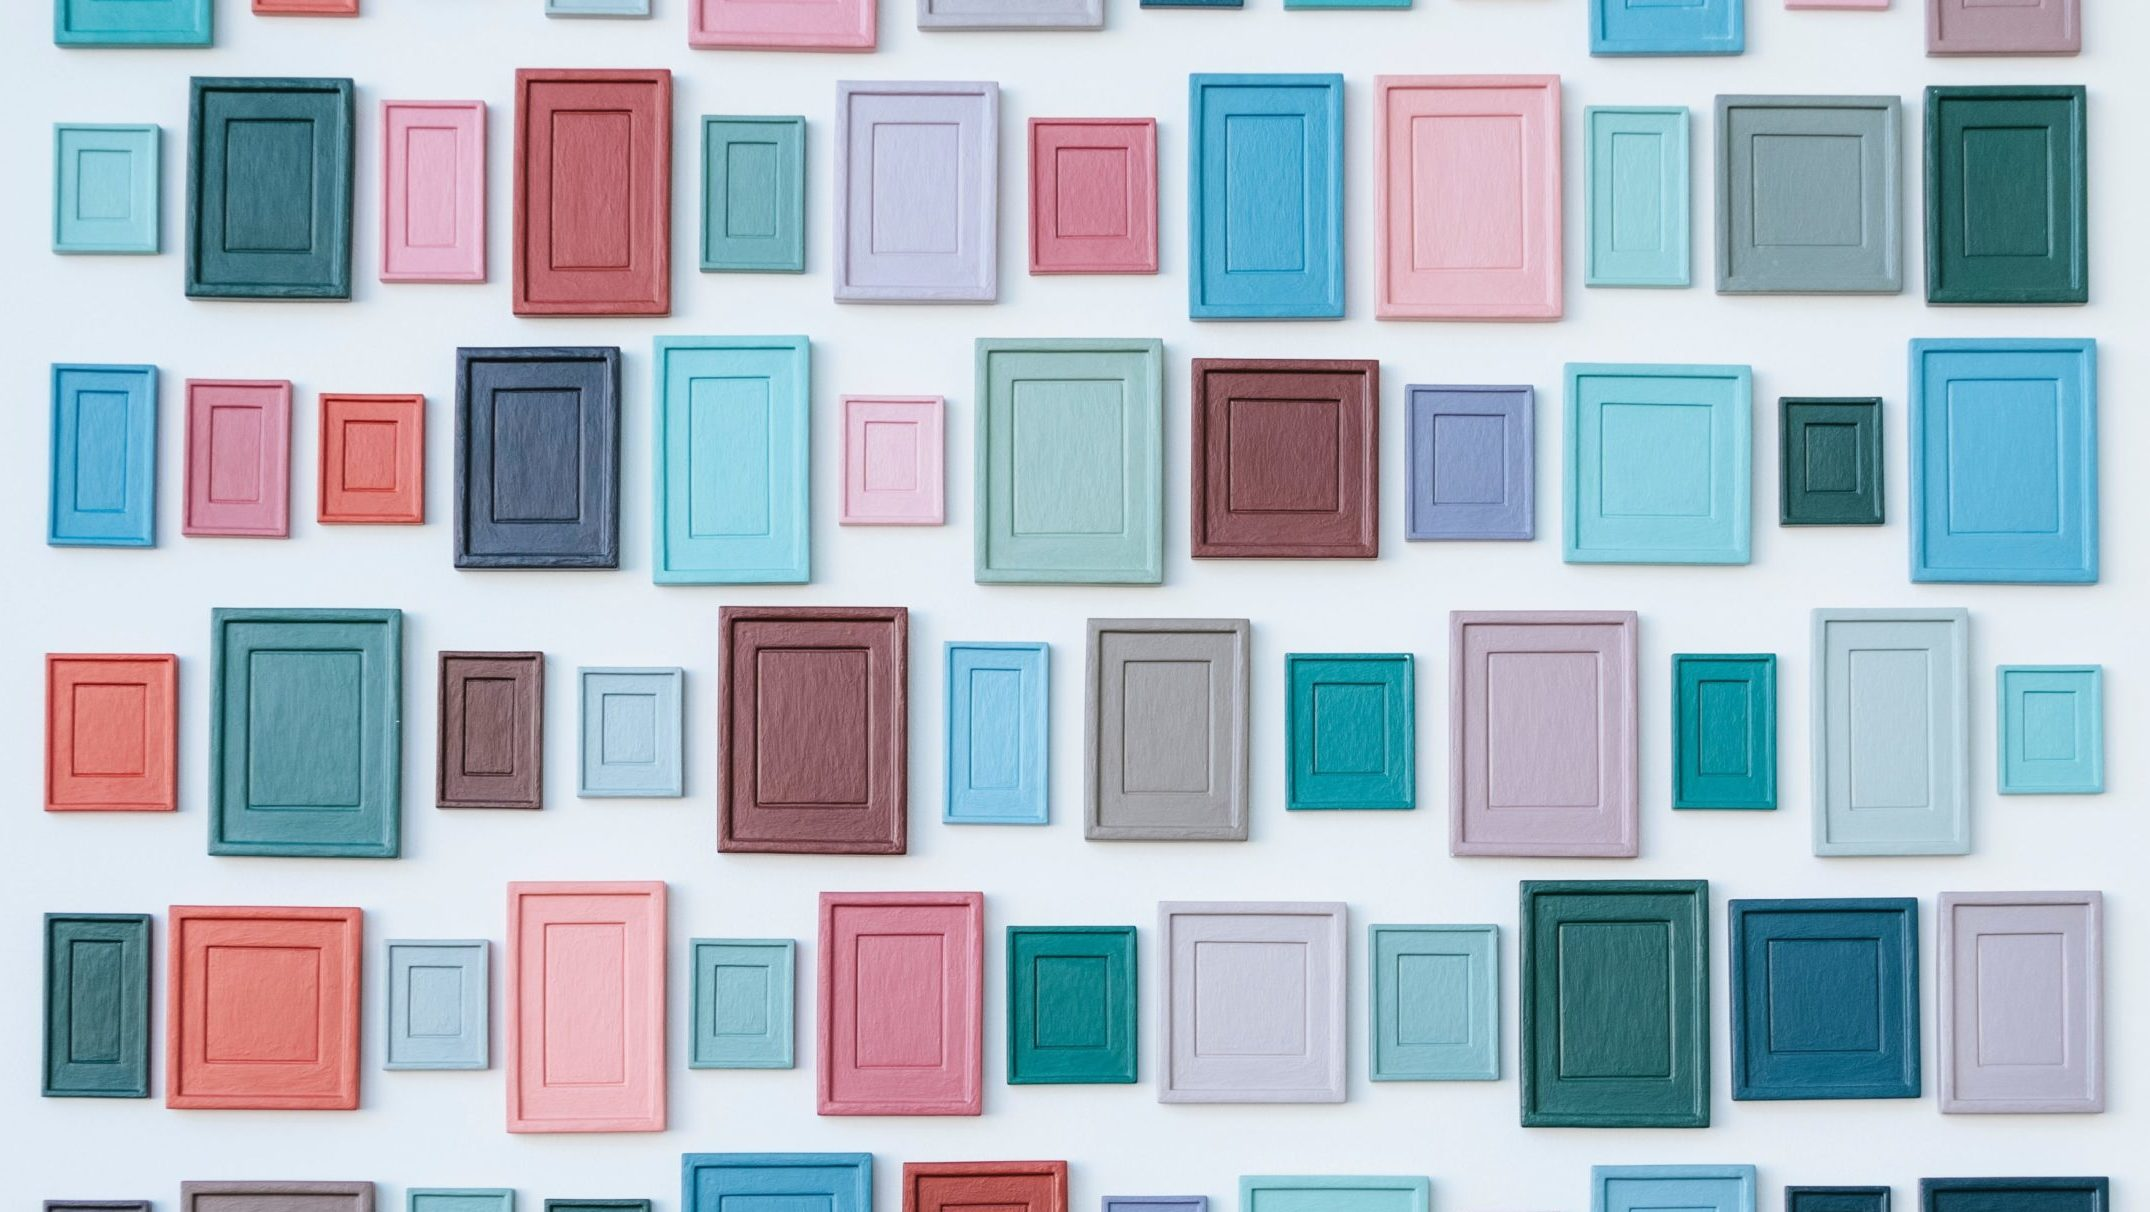 A wall of empty frames in a variety of sizes and colors.